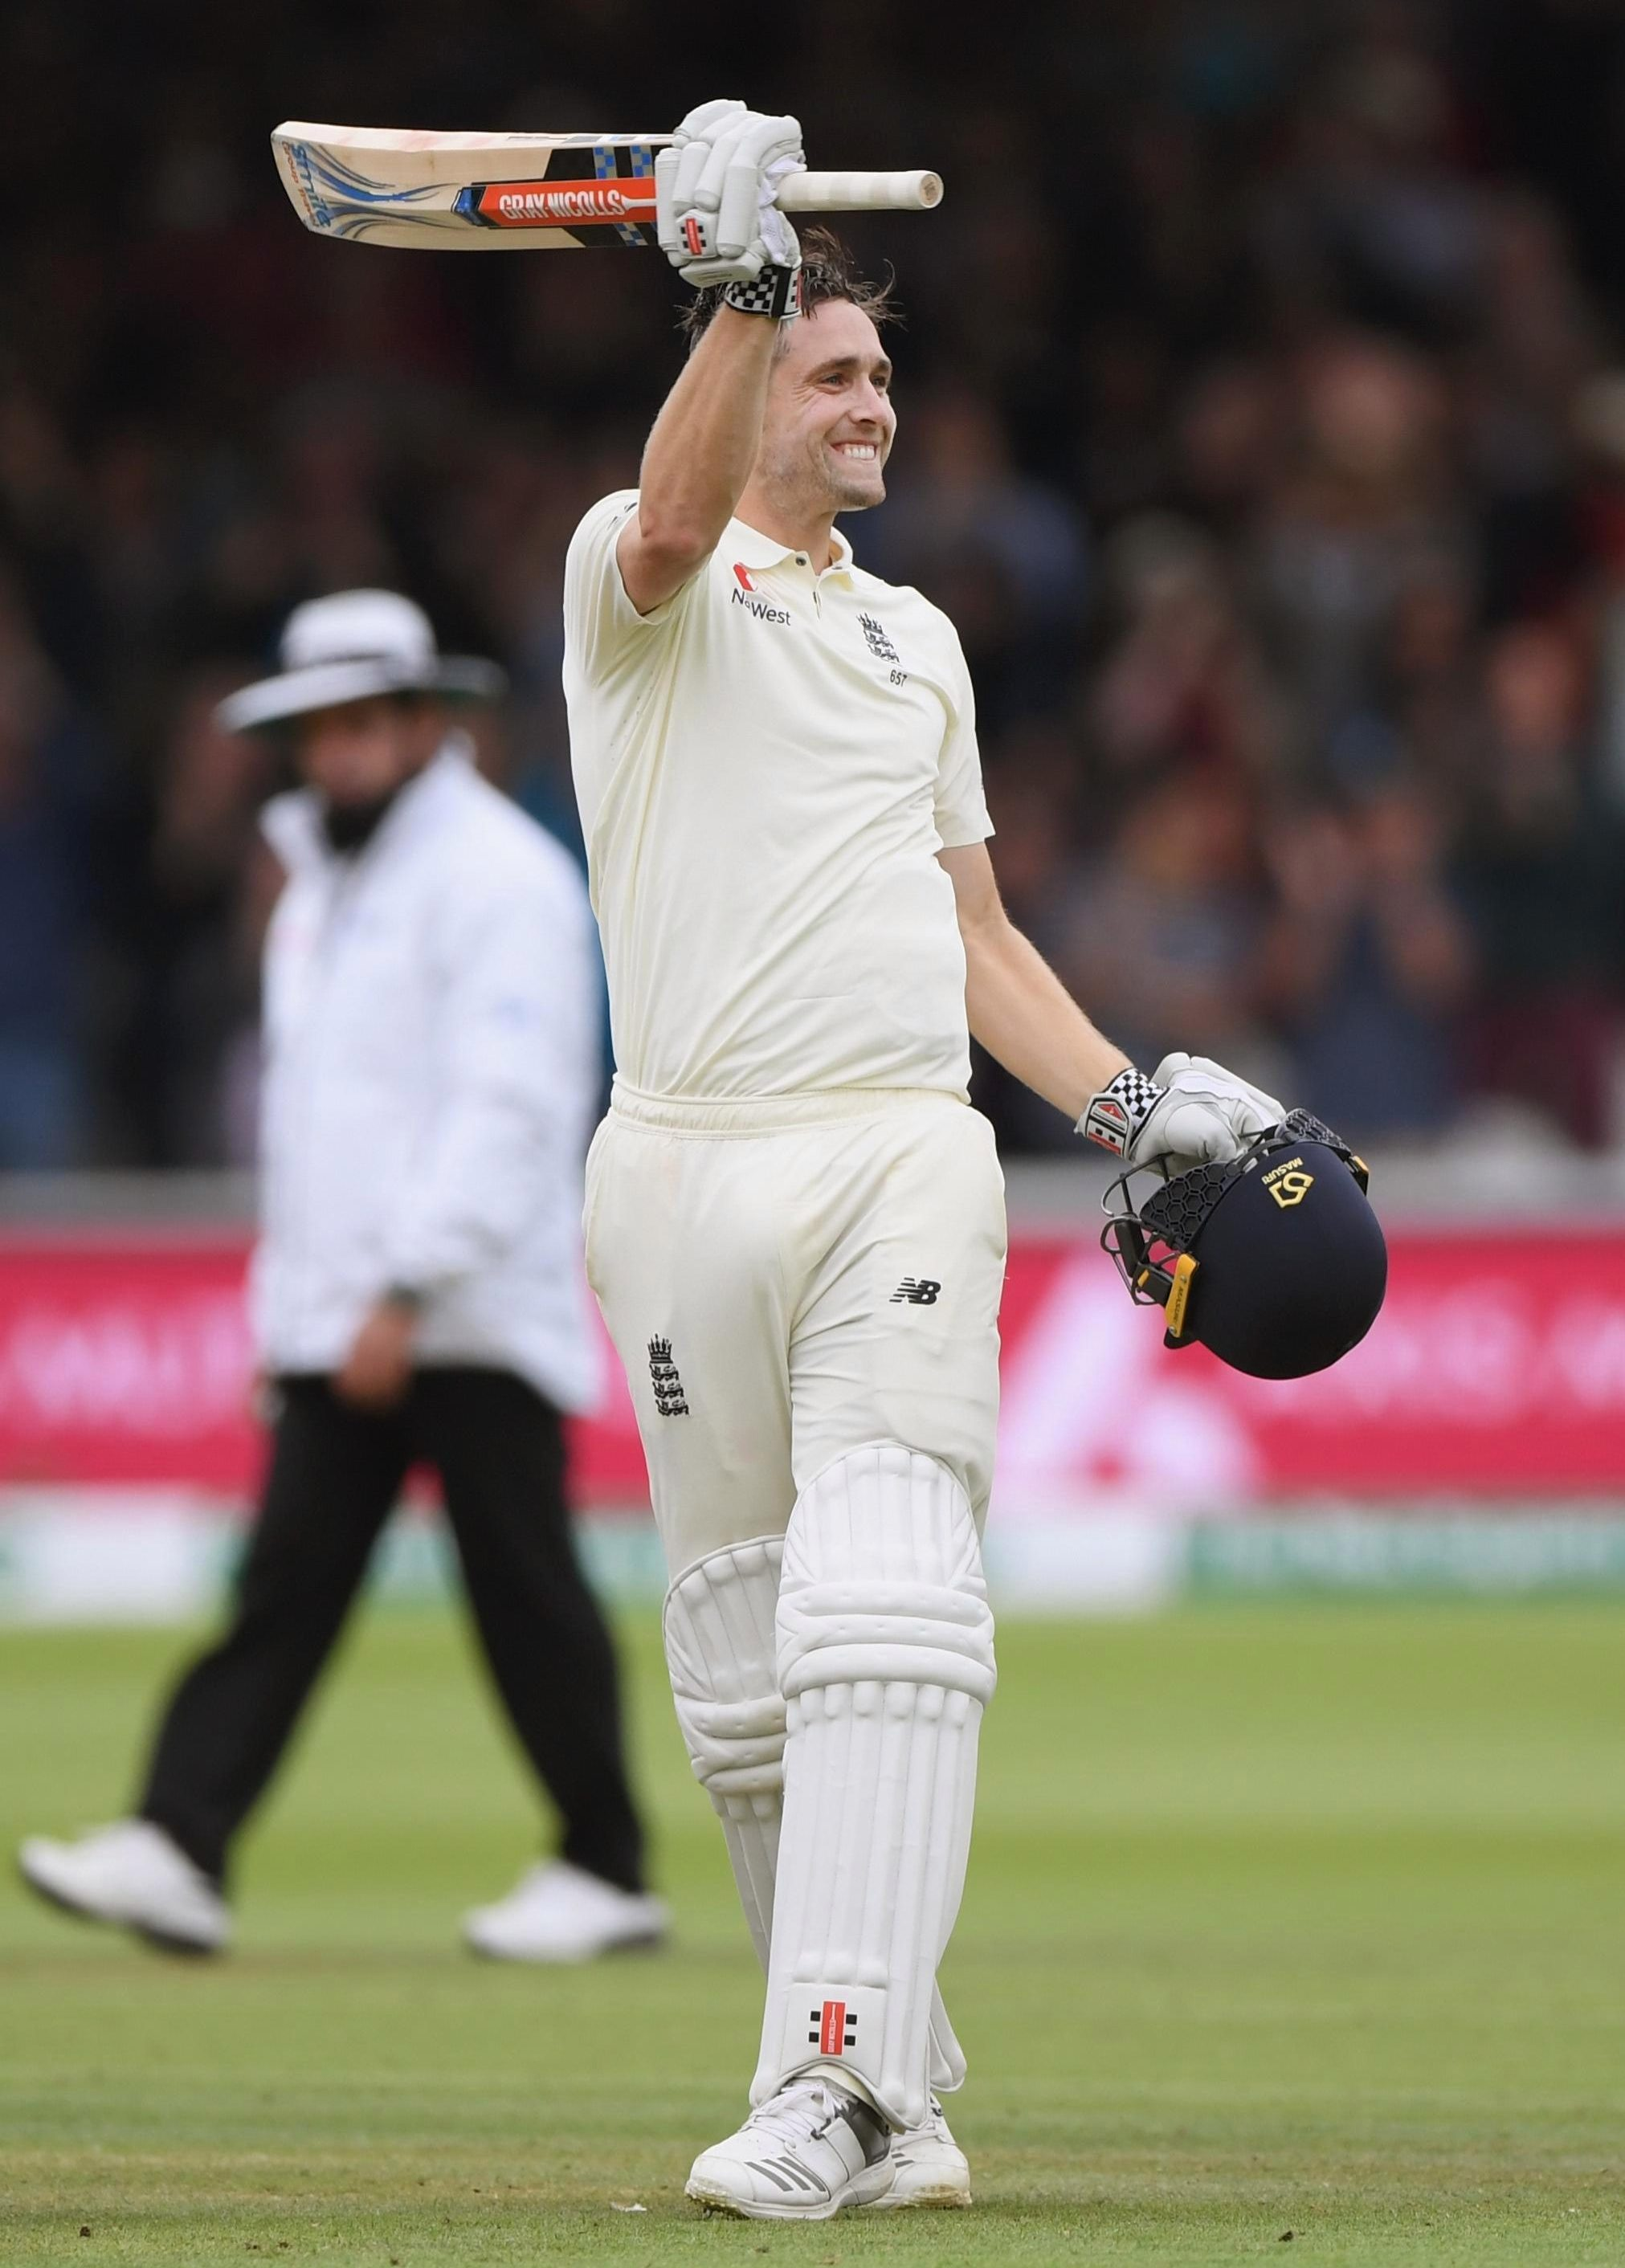 Woakes ended the day with an unbeaten 120